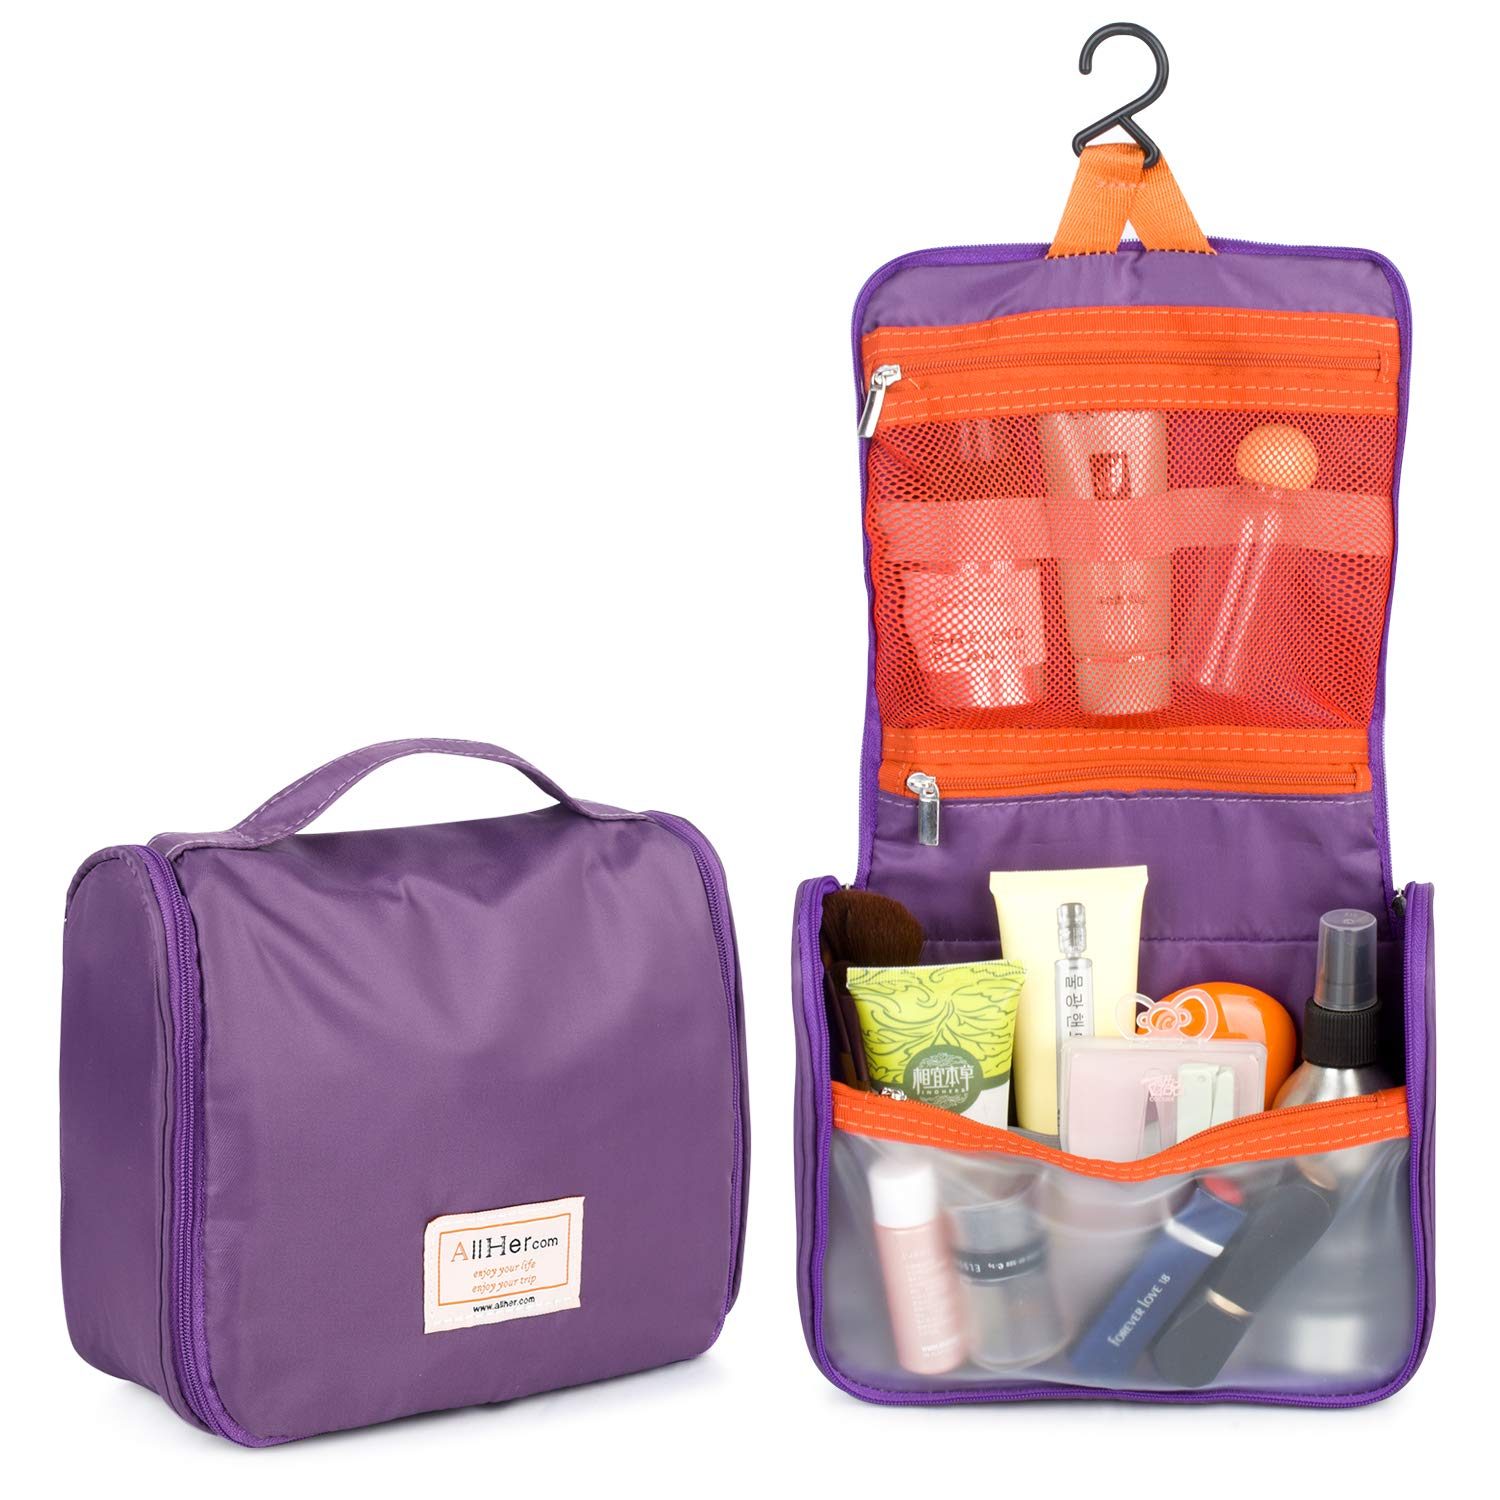 Hanging Travel Toiletry Bag for Women, Bathroom Toiletries Organizer, Folded Wash Bag, Roll up Cosmetic Make up Bag for Girl, Bonus 1PC Travel Packing Cube